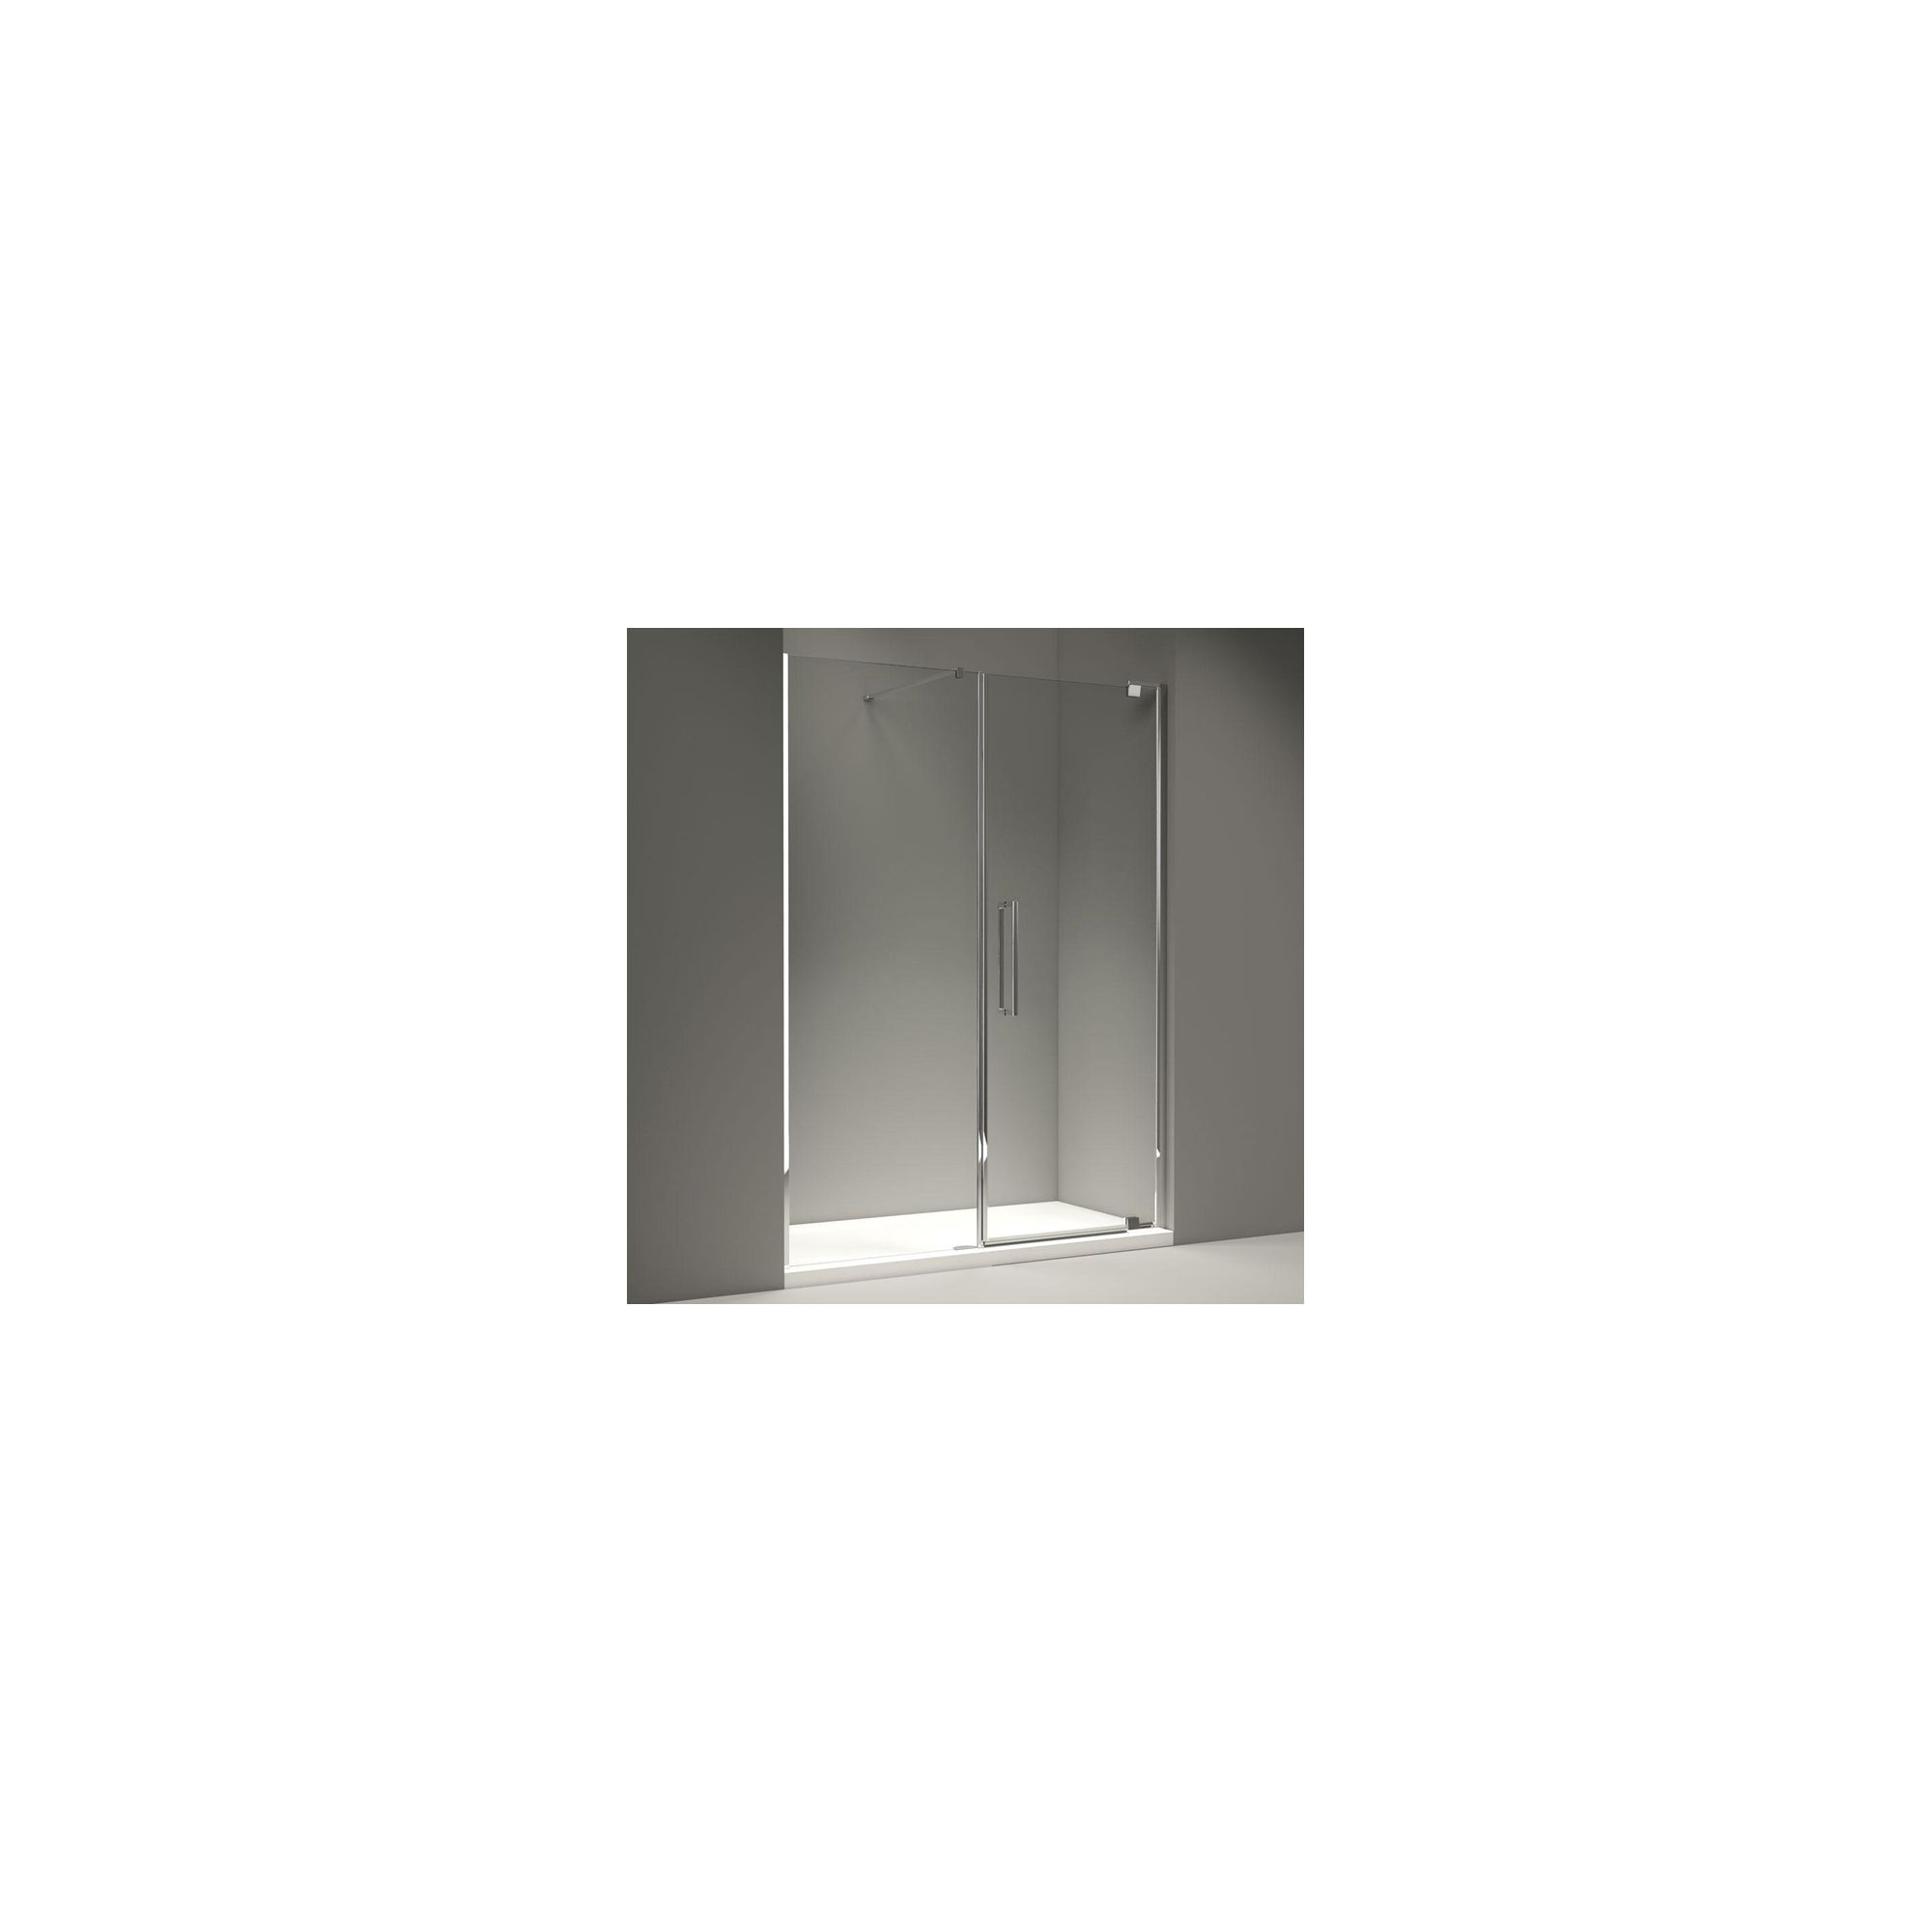 Merlyn Series 10 Inline Pivot Shower Door, 1500mm Wide, 10mm Smoked Glass at Tesco Direct